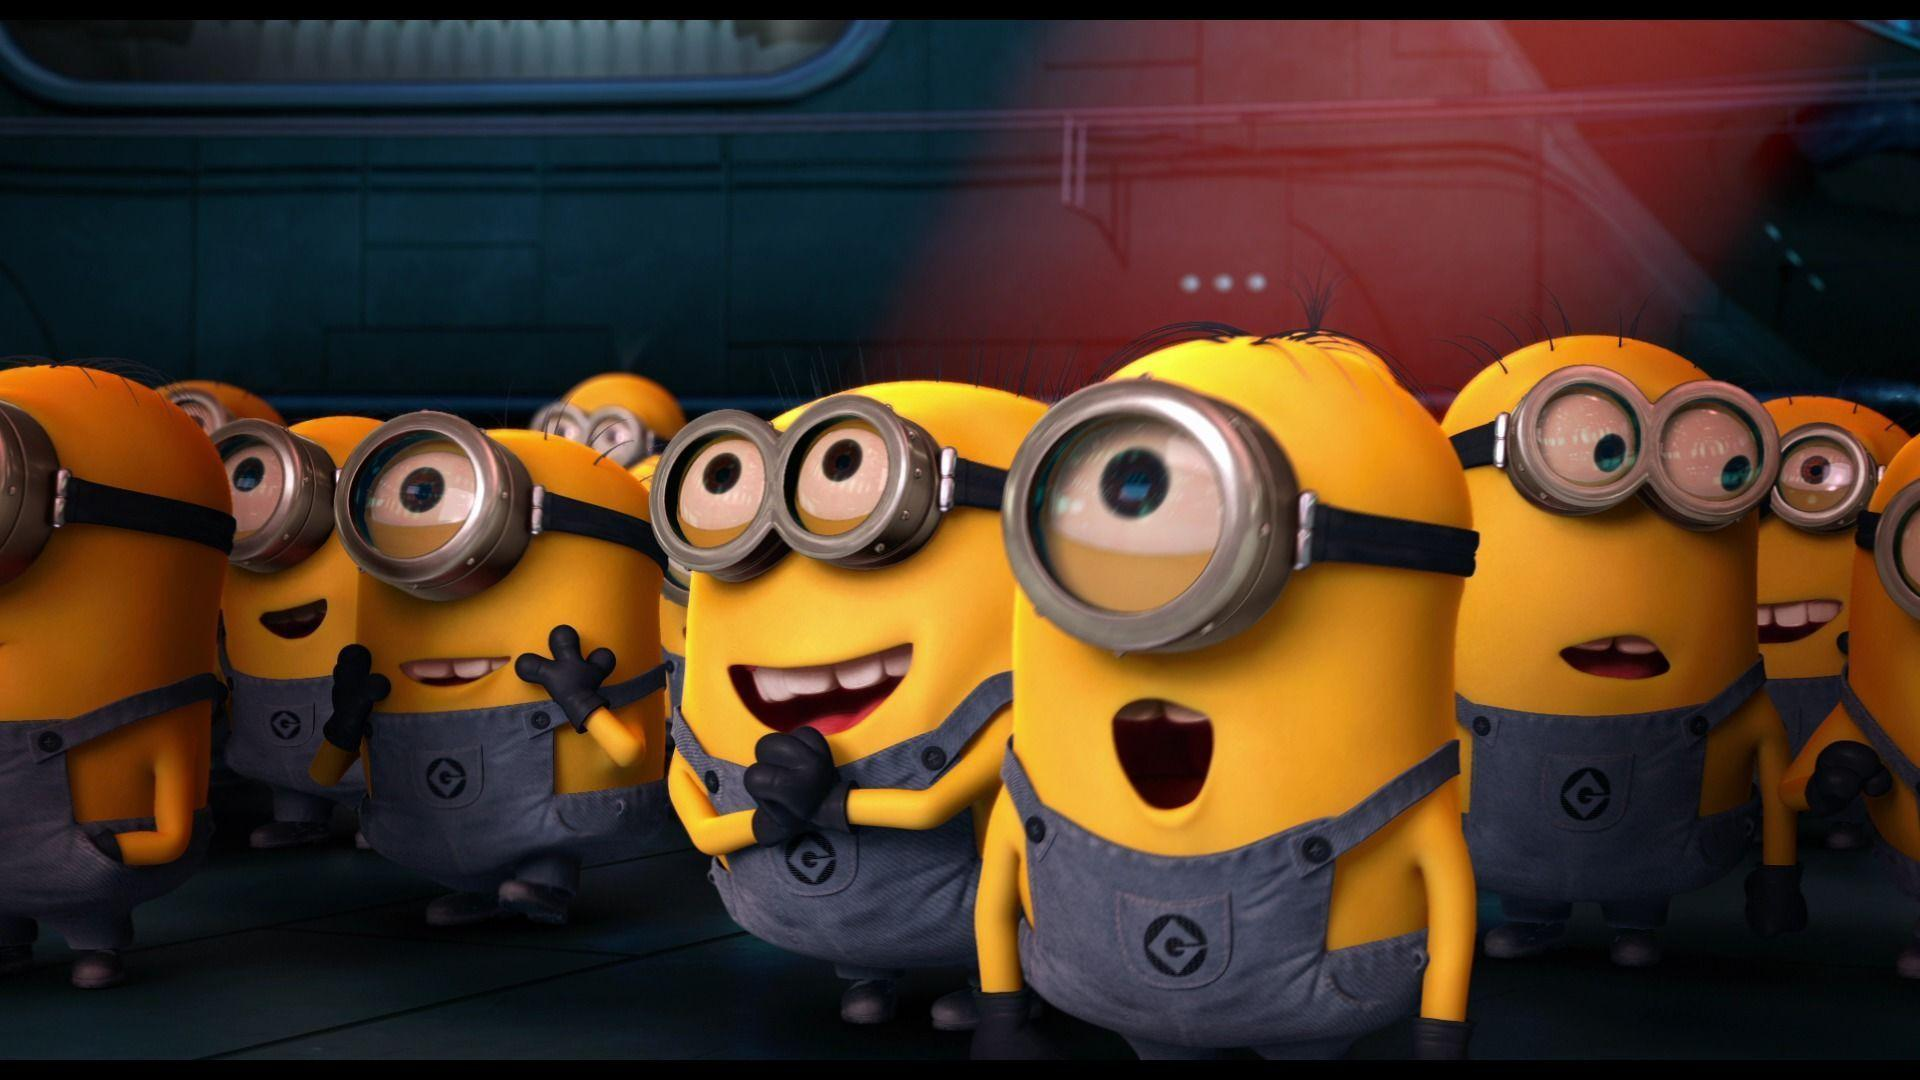 despicable me minions wallpapers - photo #5